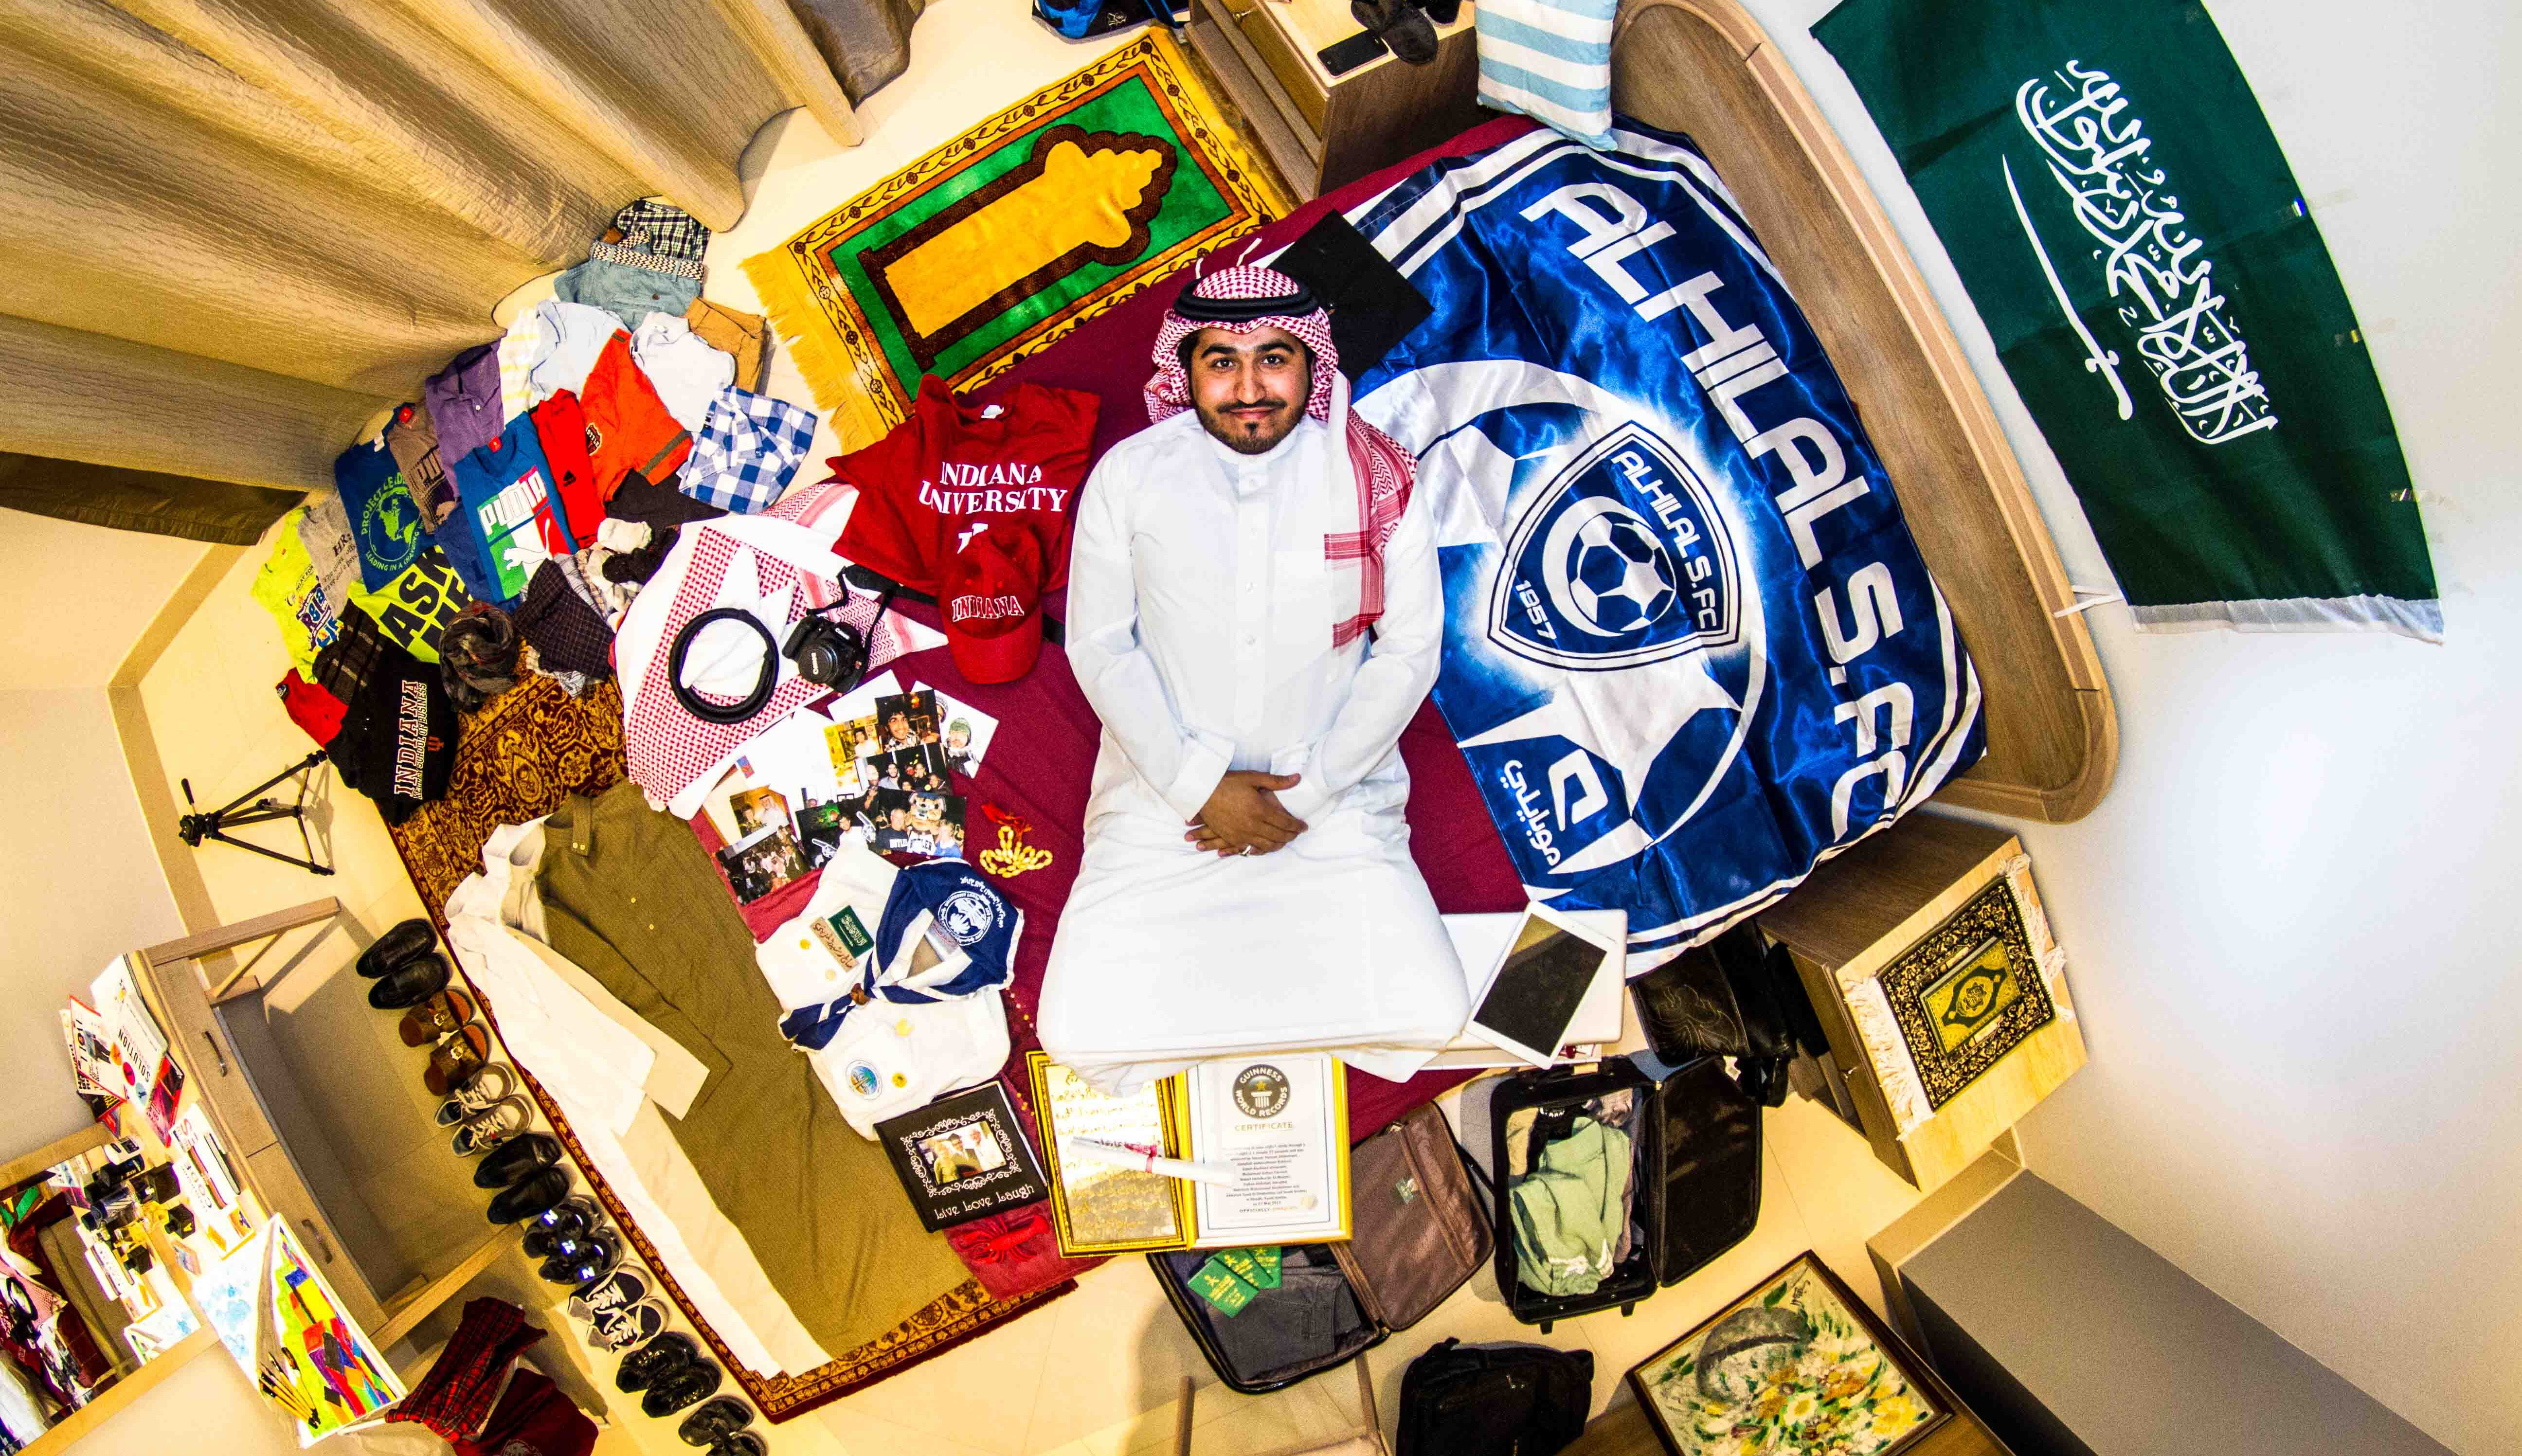 Photos of millennials' bedrooms around the world are a peek into global youth culture